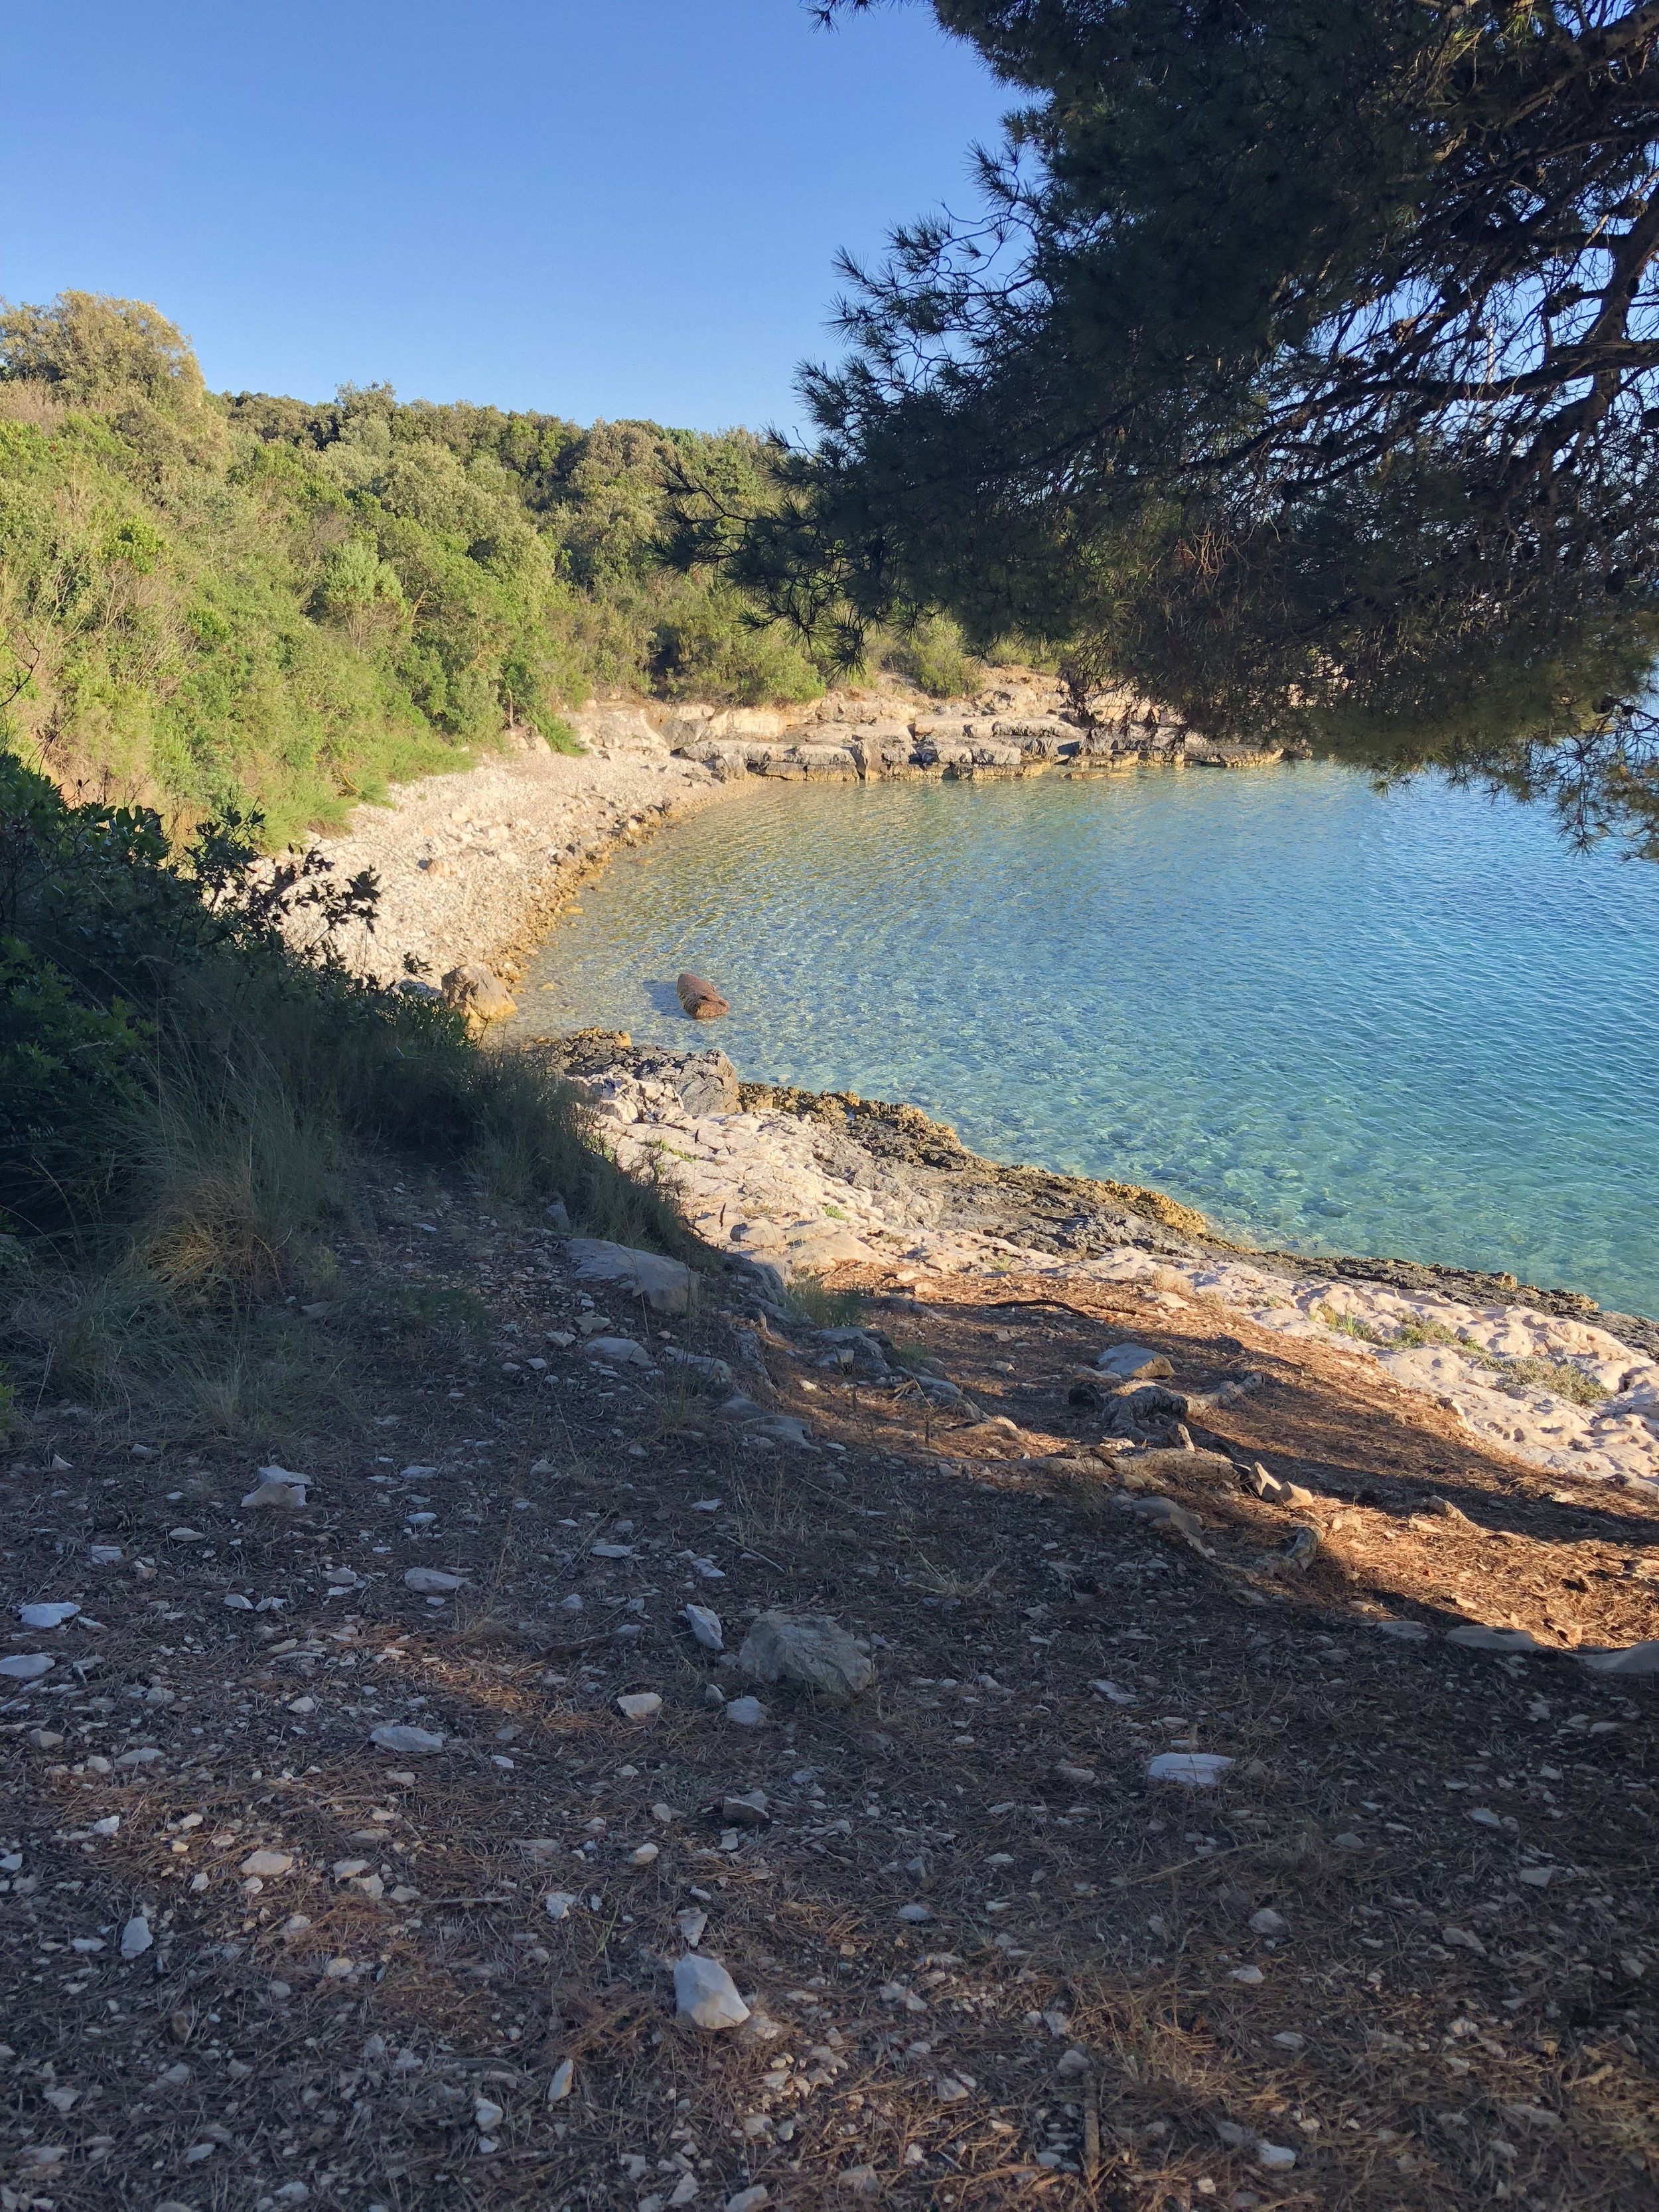 Private beaches, only accessible by boat or on foot